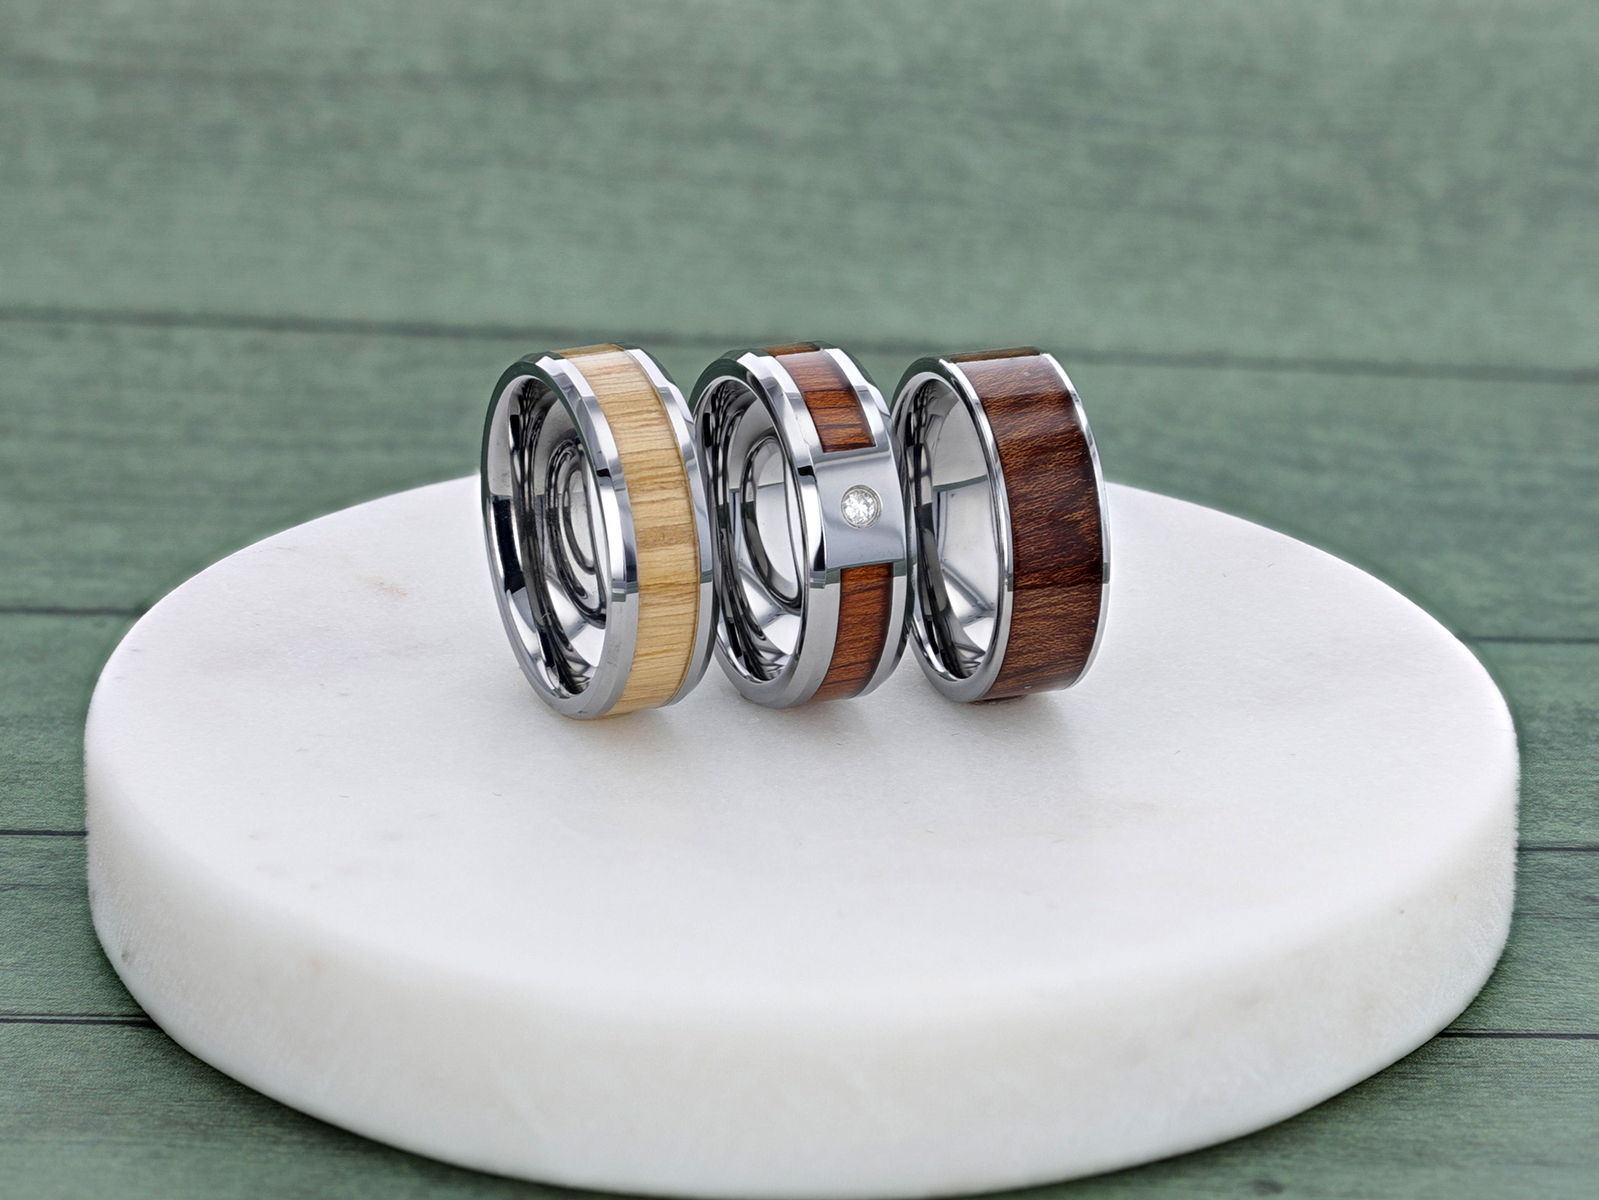 Gorgeous and Rustic: What's the Deal with Wood Rings and Wedding Bands?